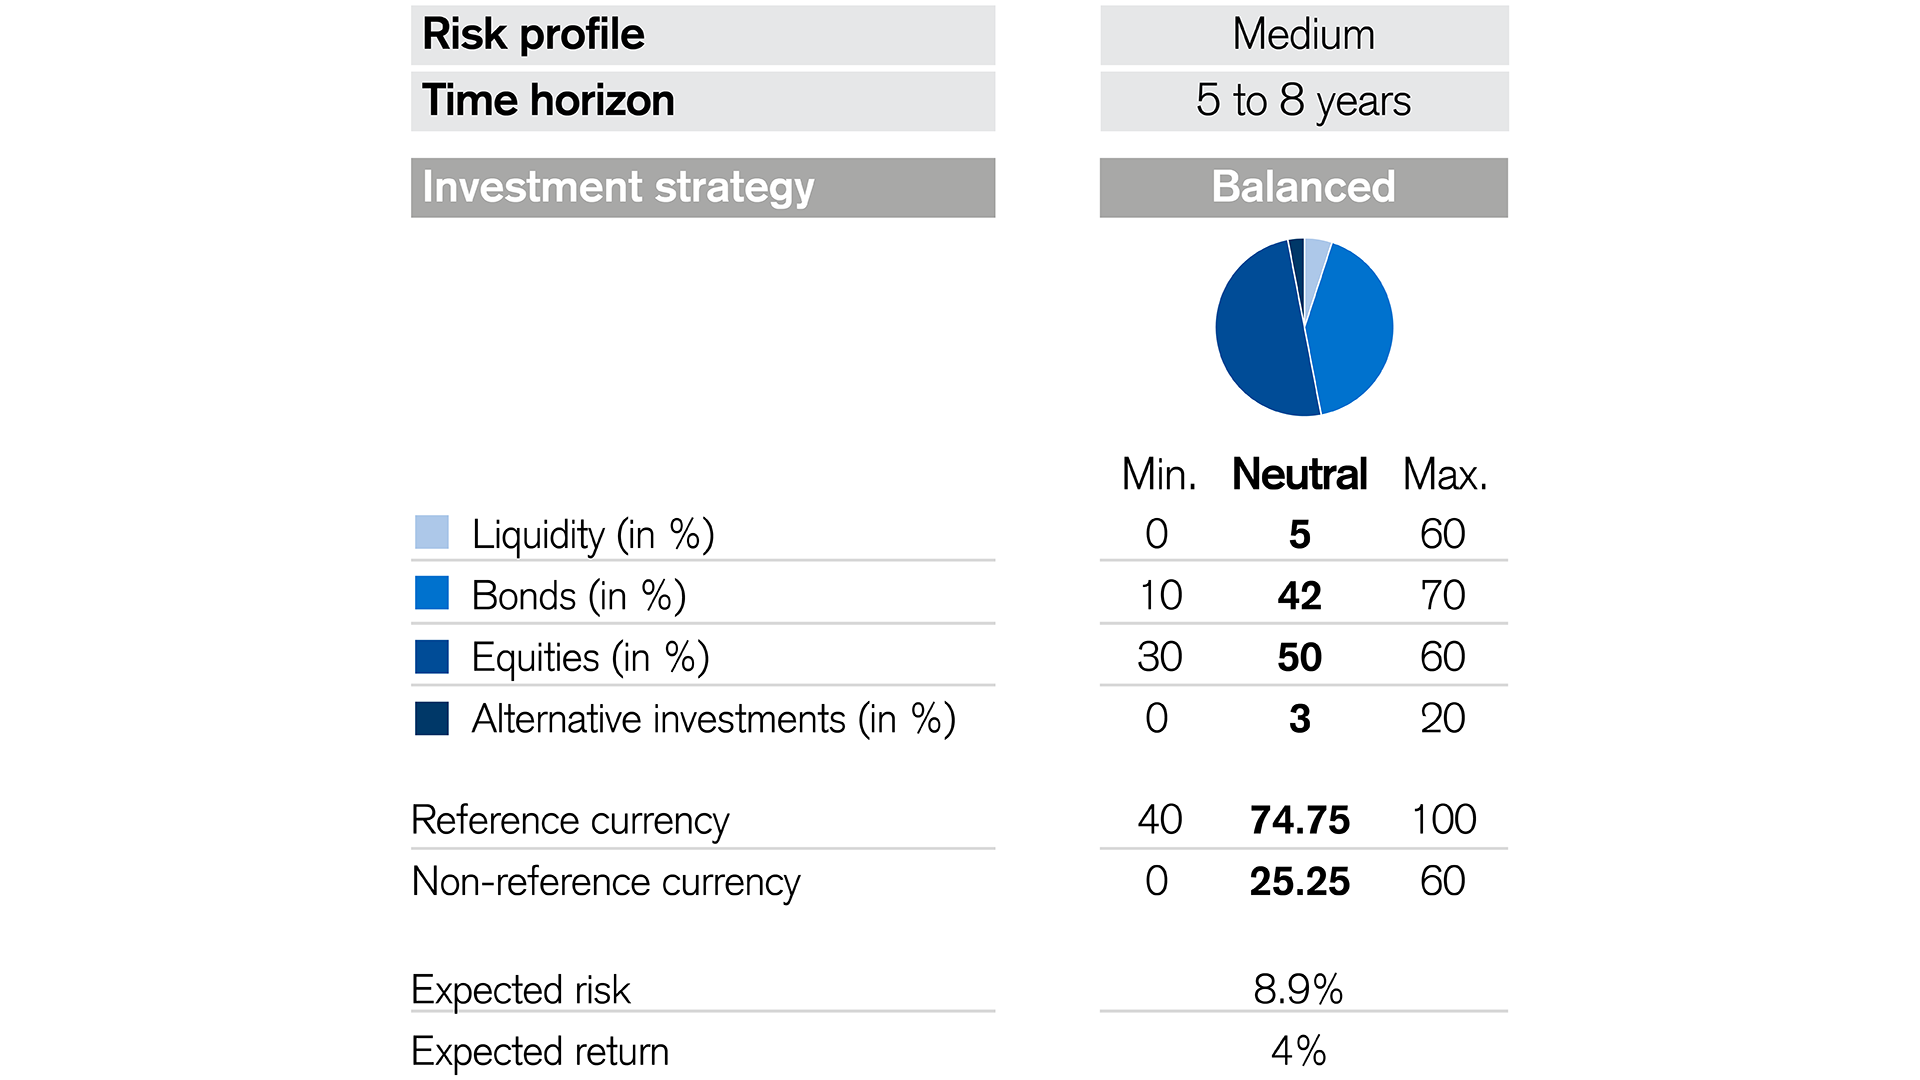 overview of the credit Suisse interest & dividend focus fund